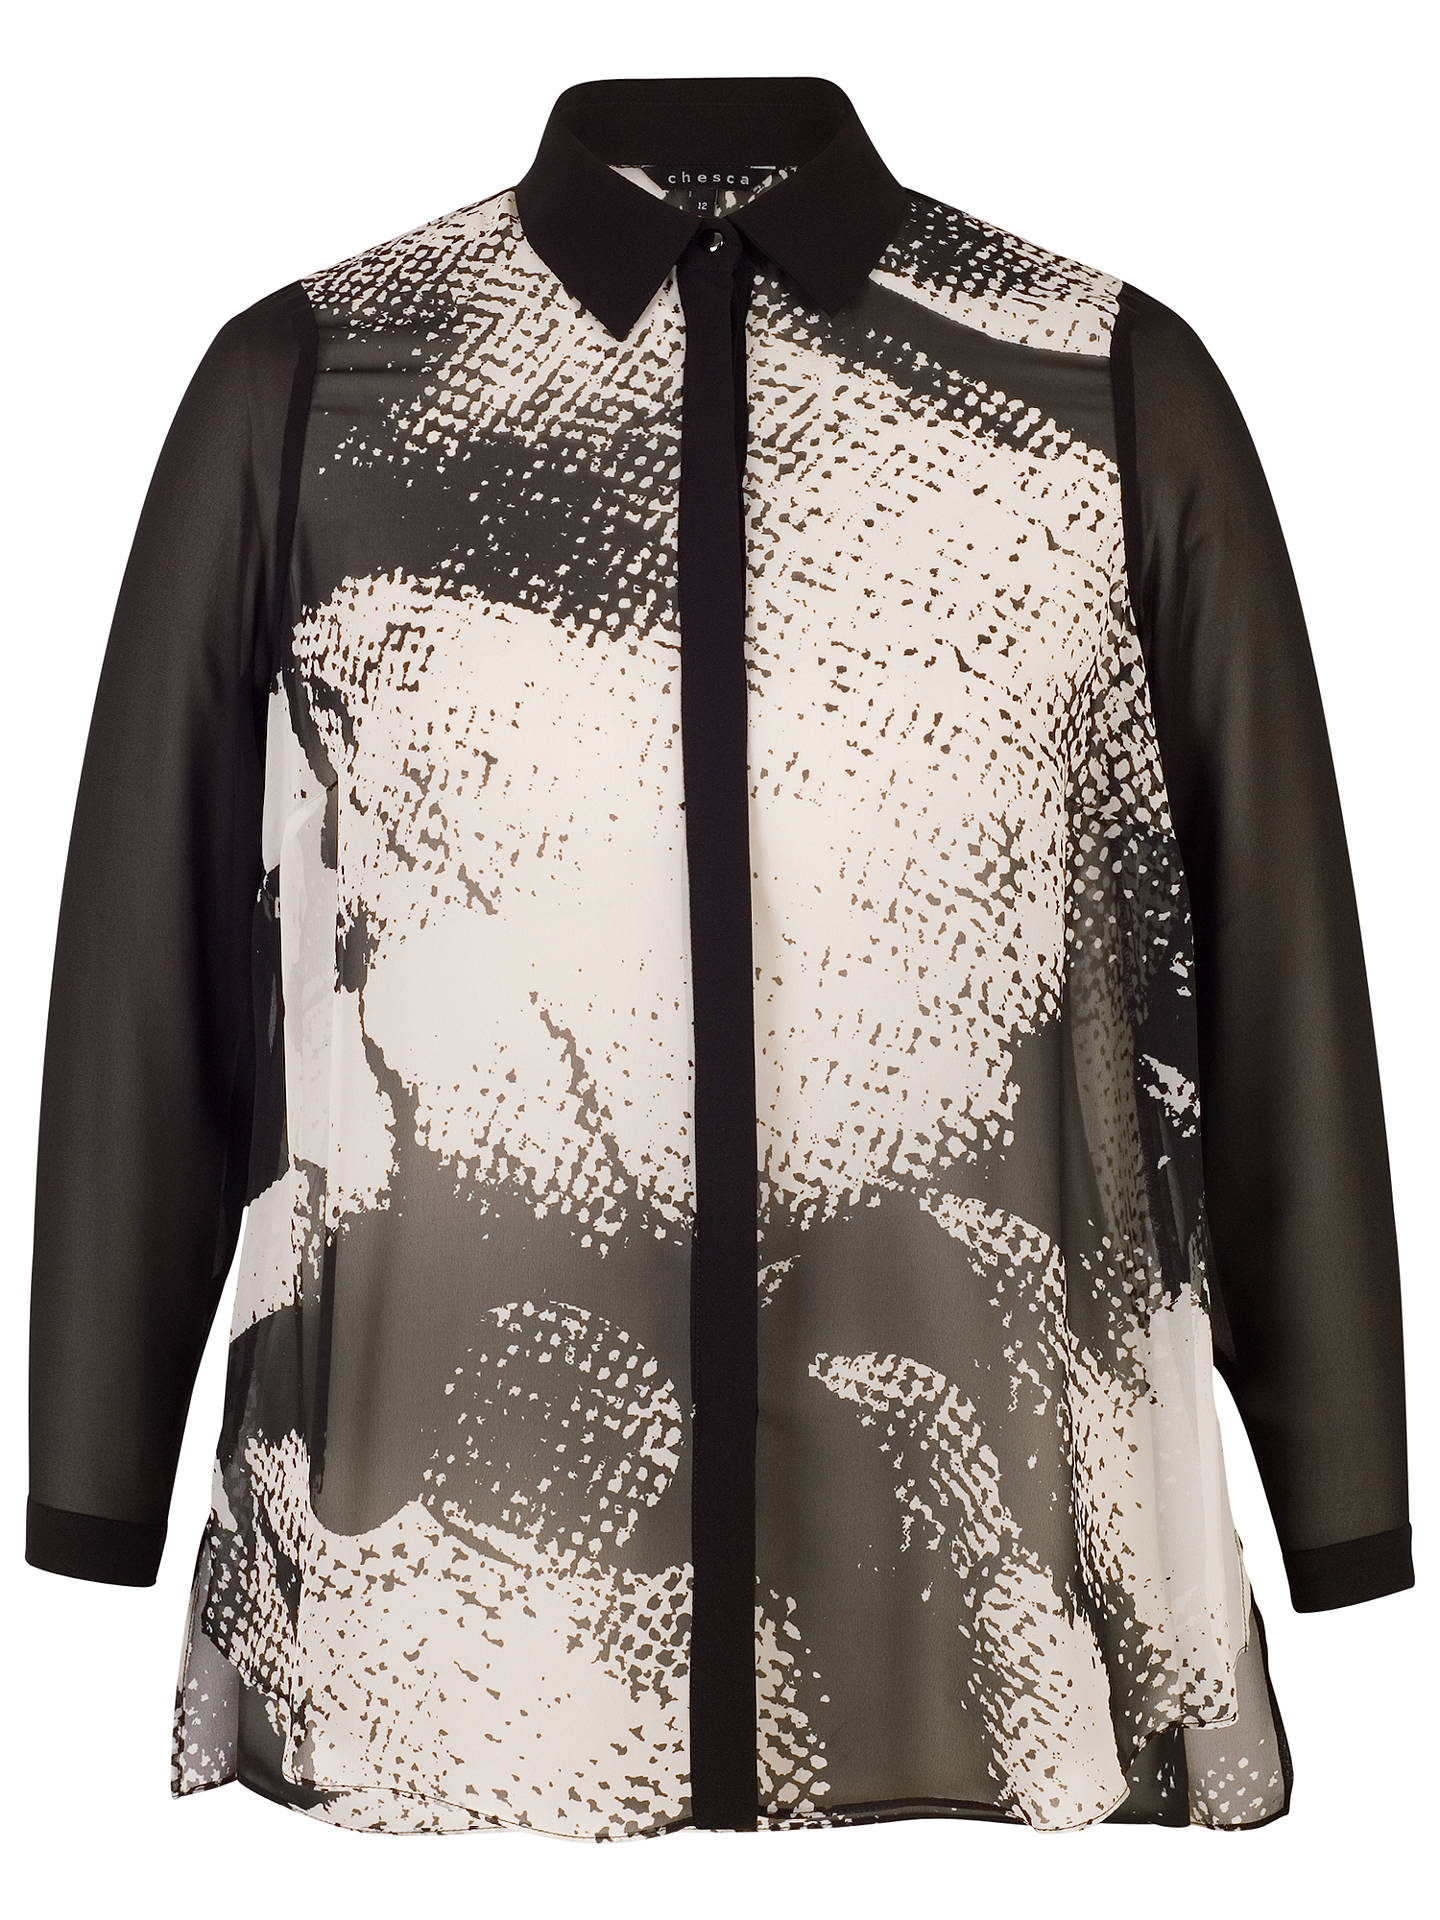 BuyChesca Printed Shirt, Black/Ivory, 14 Online at johnlewis.com